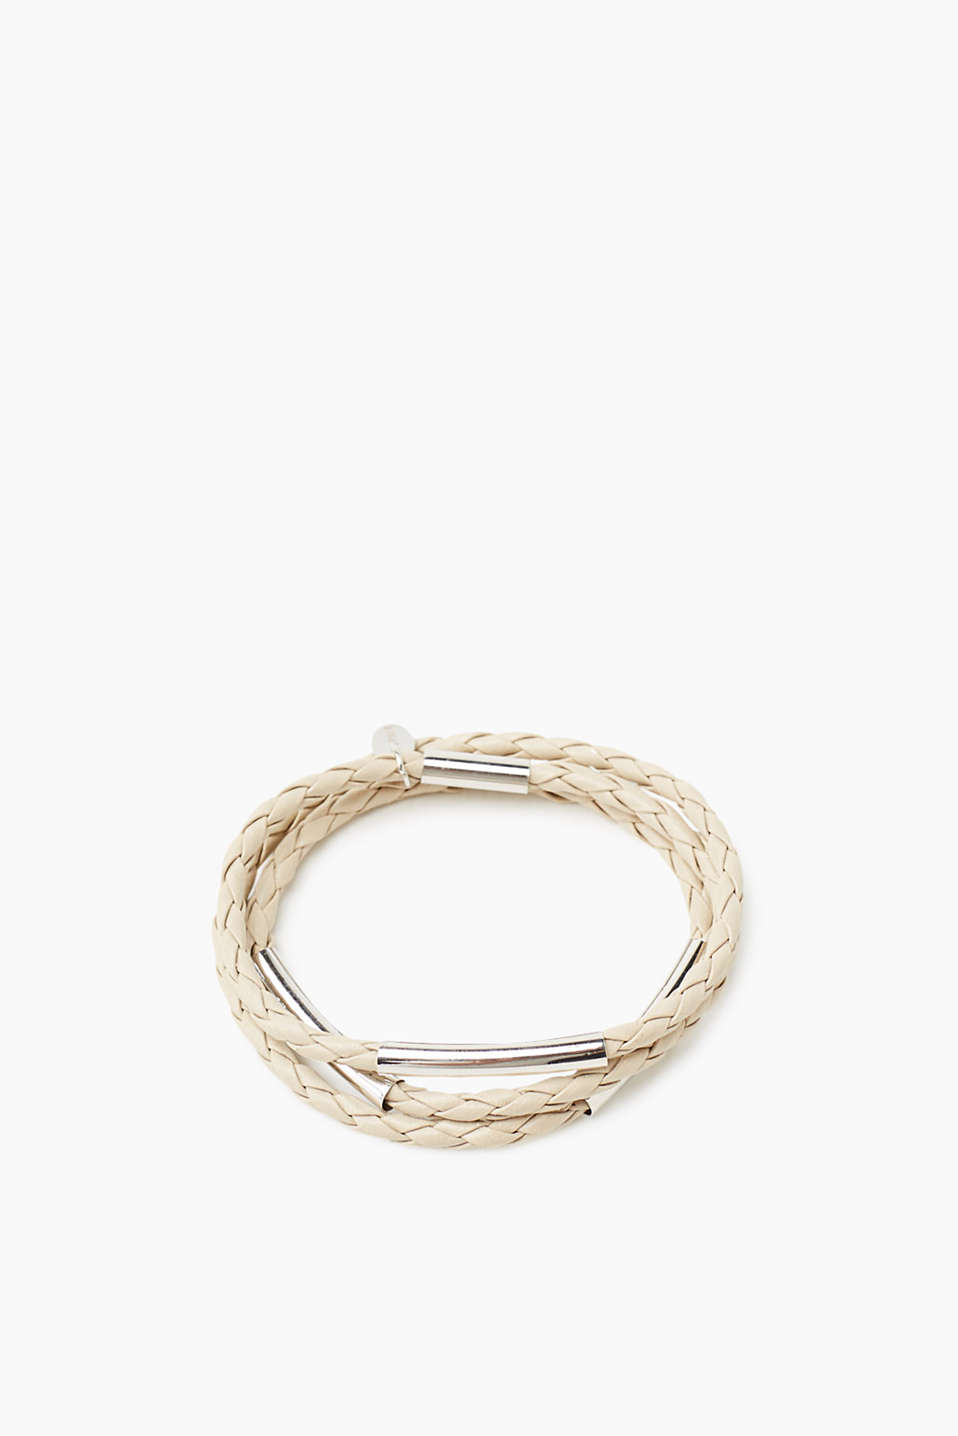 Delicate three-strand bracelet in braided leather